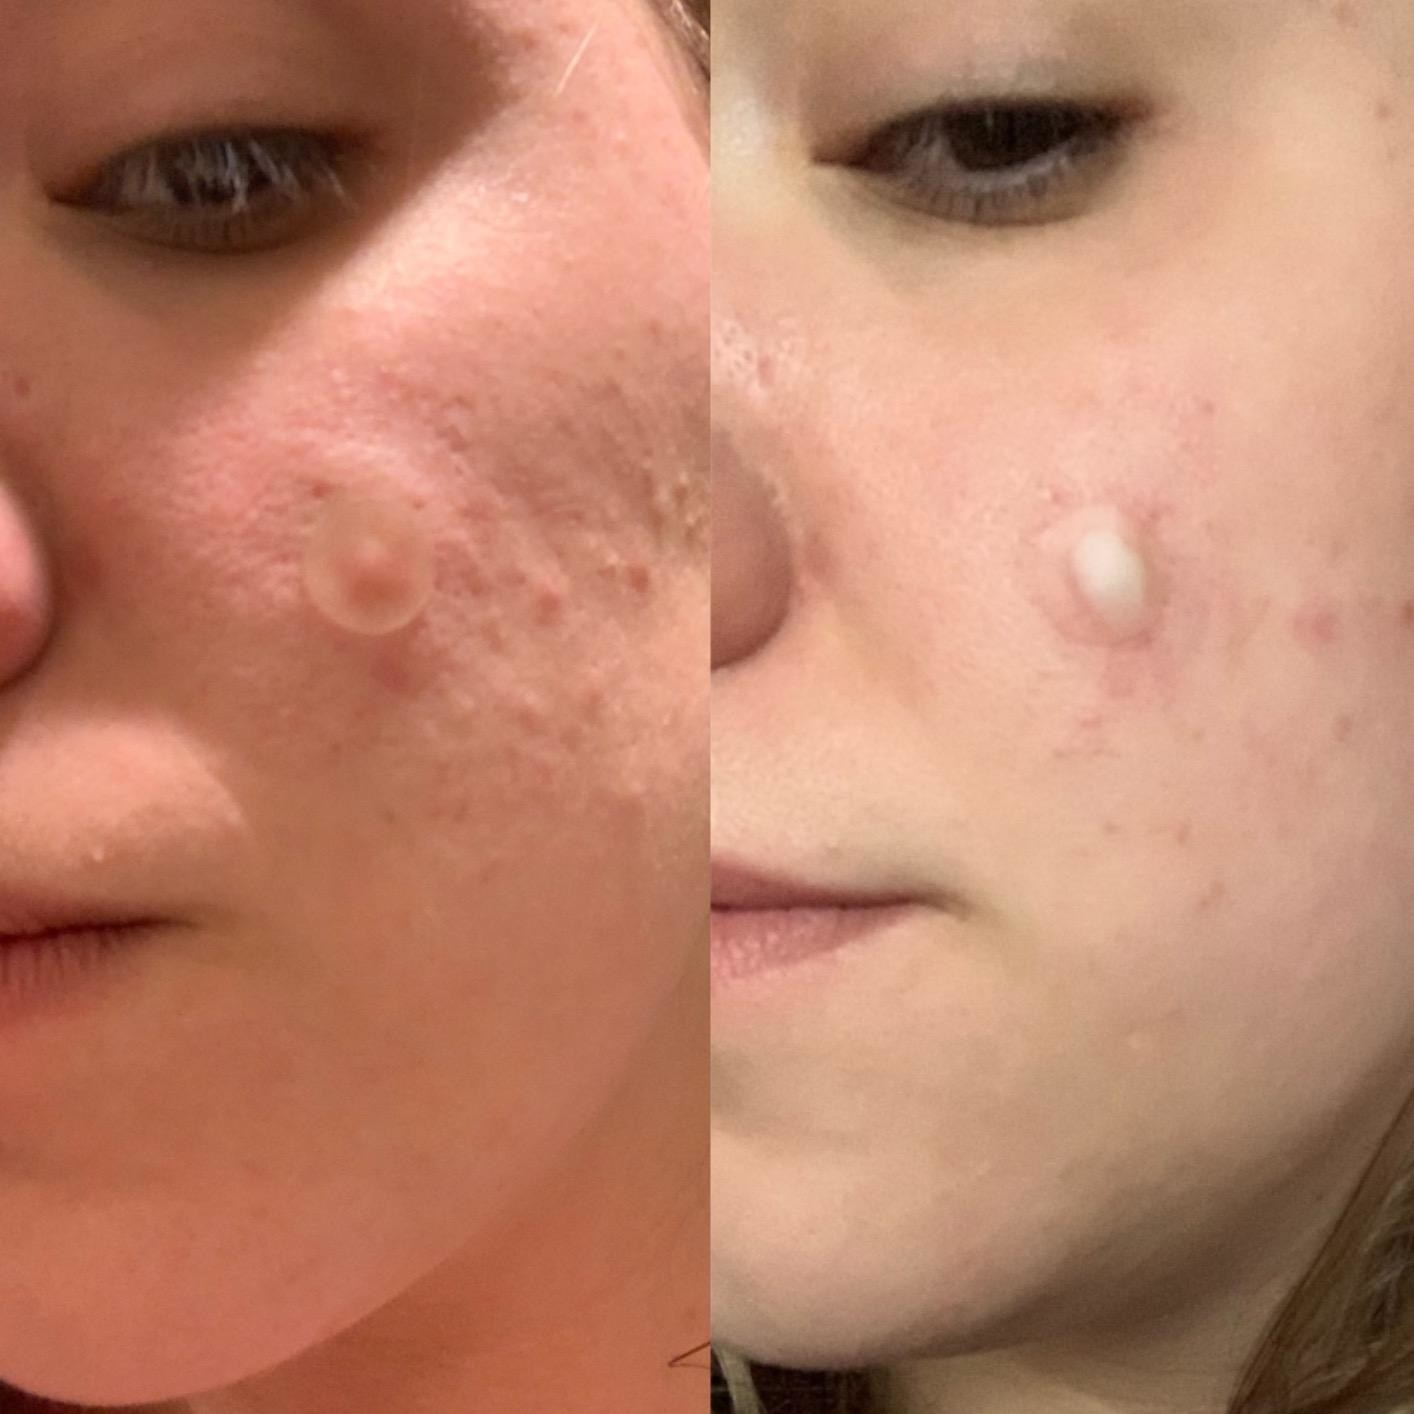 on the right a reviewer's face pimple with a clear pimple patch on it, on the left the same face where the patch is full of white sebum